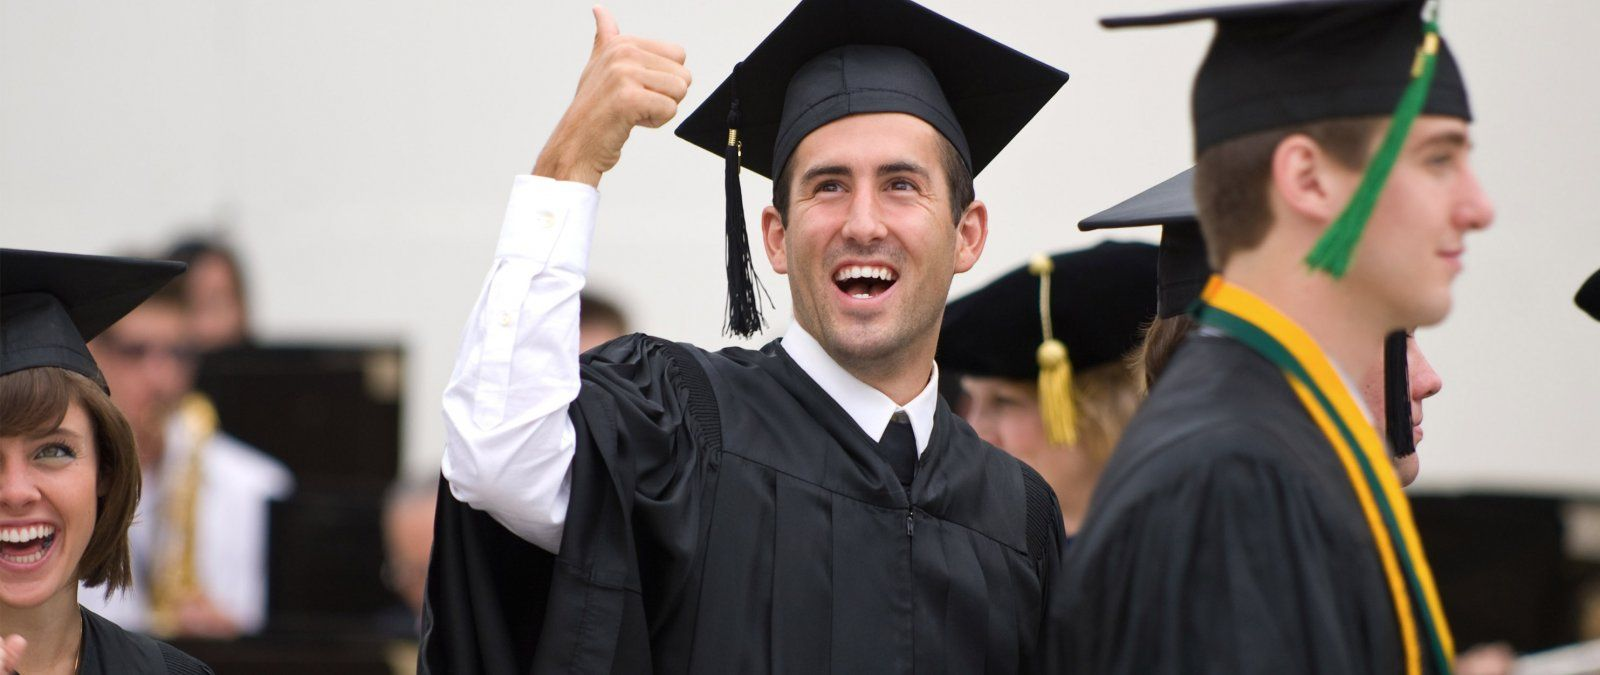 A graduating senior gives a thumbs up to his family in the audience